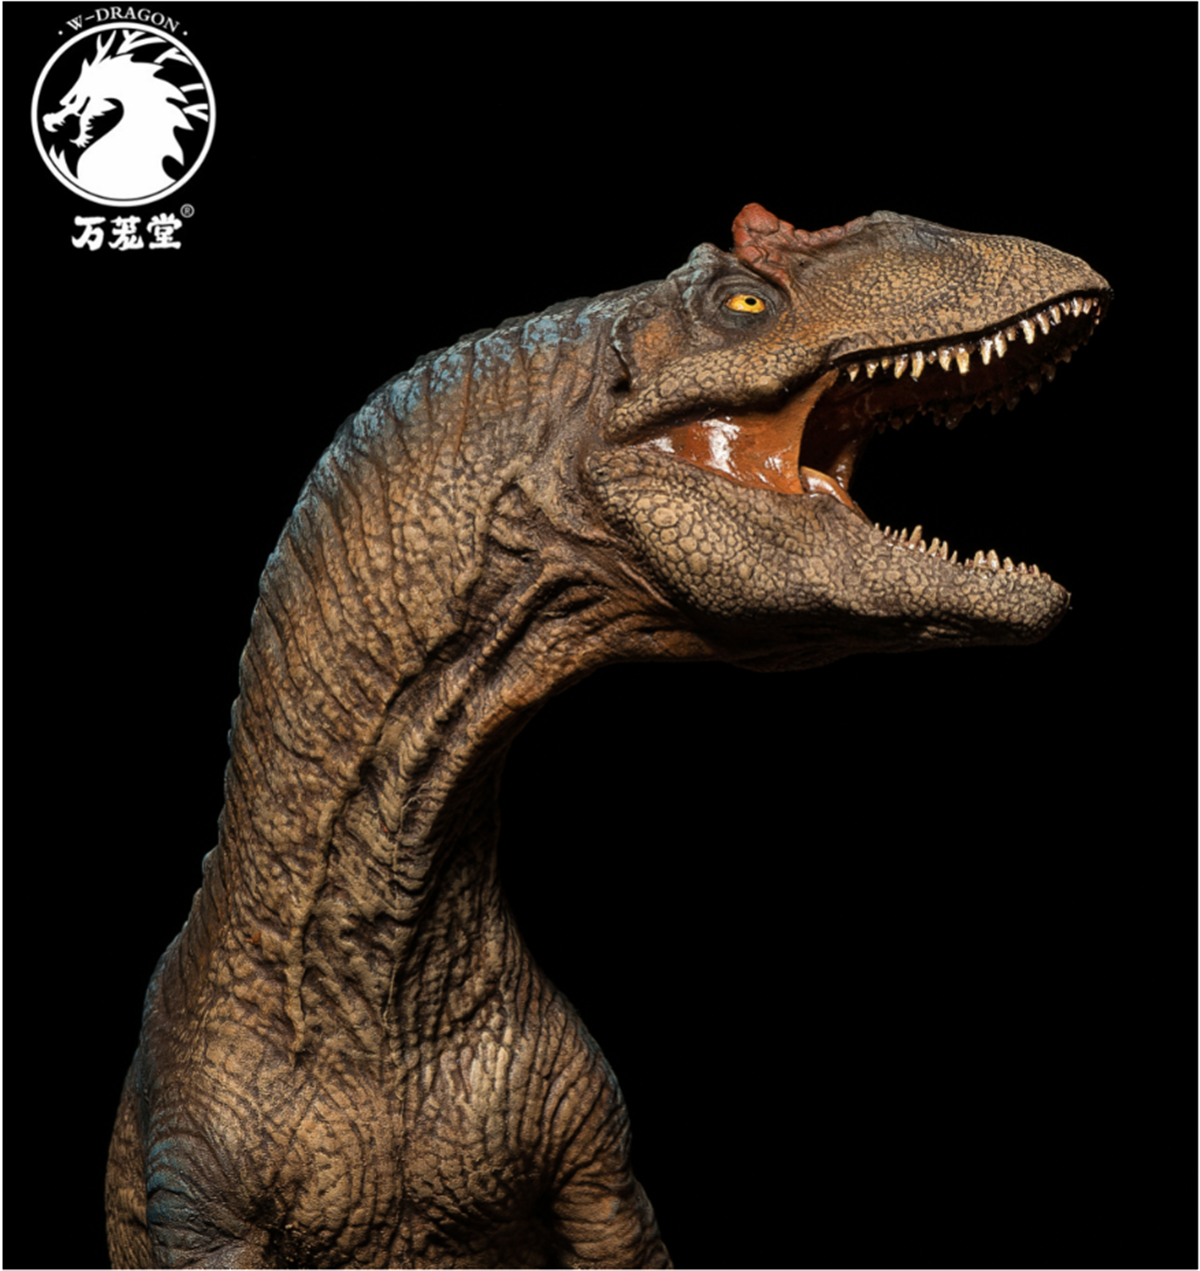 IN STOCK! 2019 W Dragon 1:35 Scale New Special Limited ...